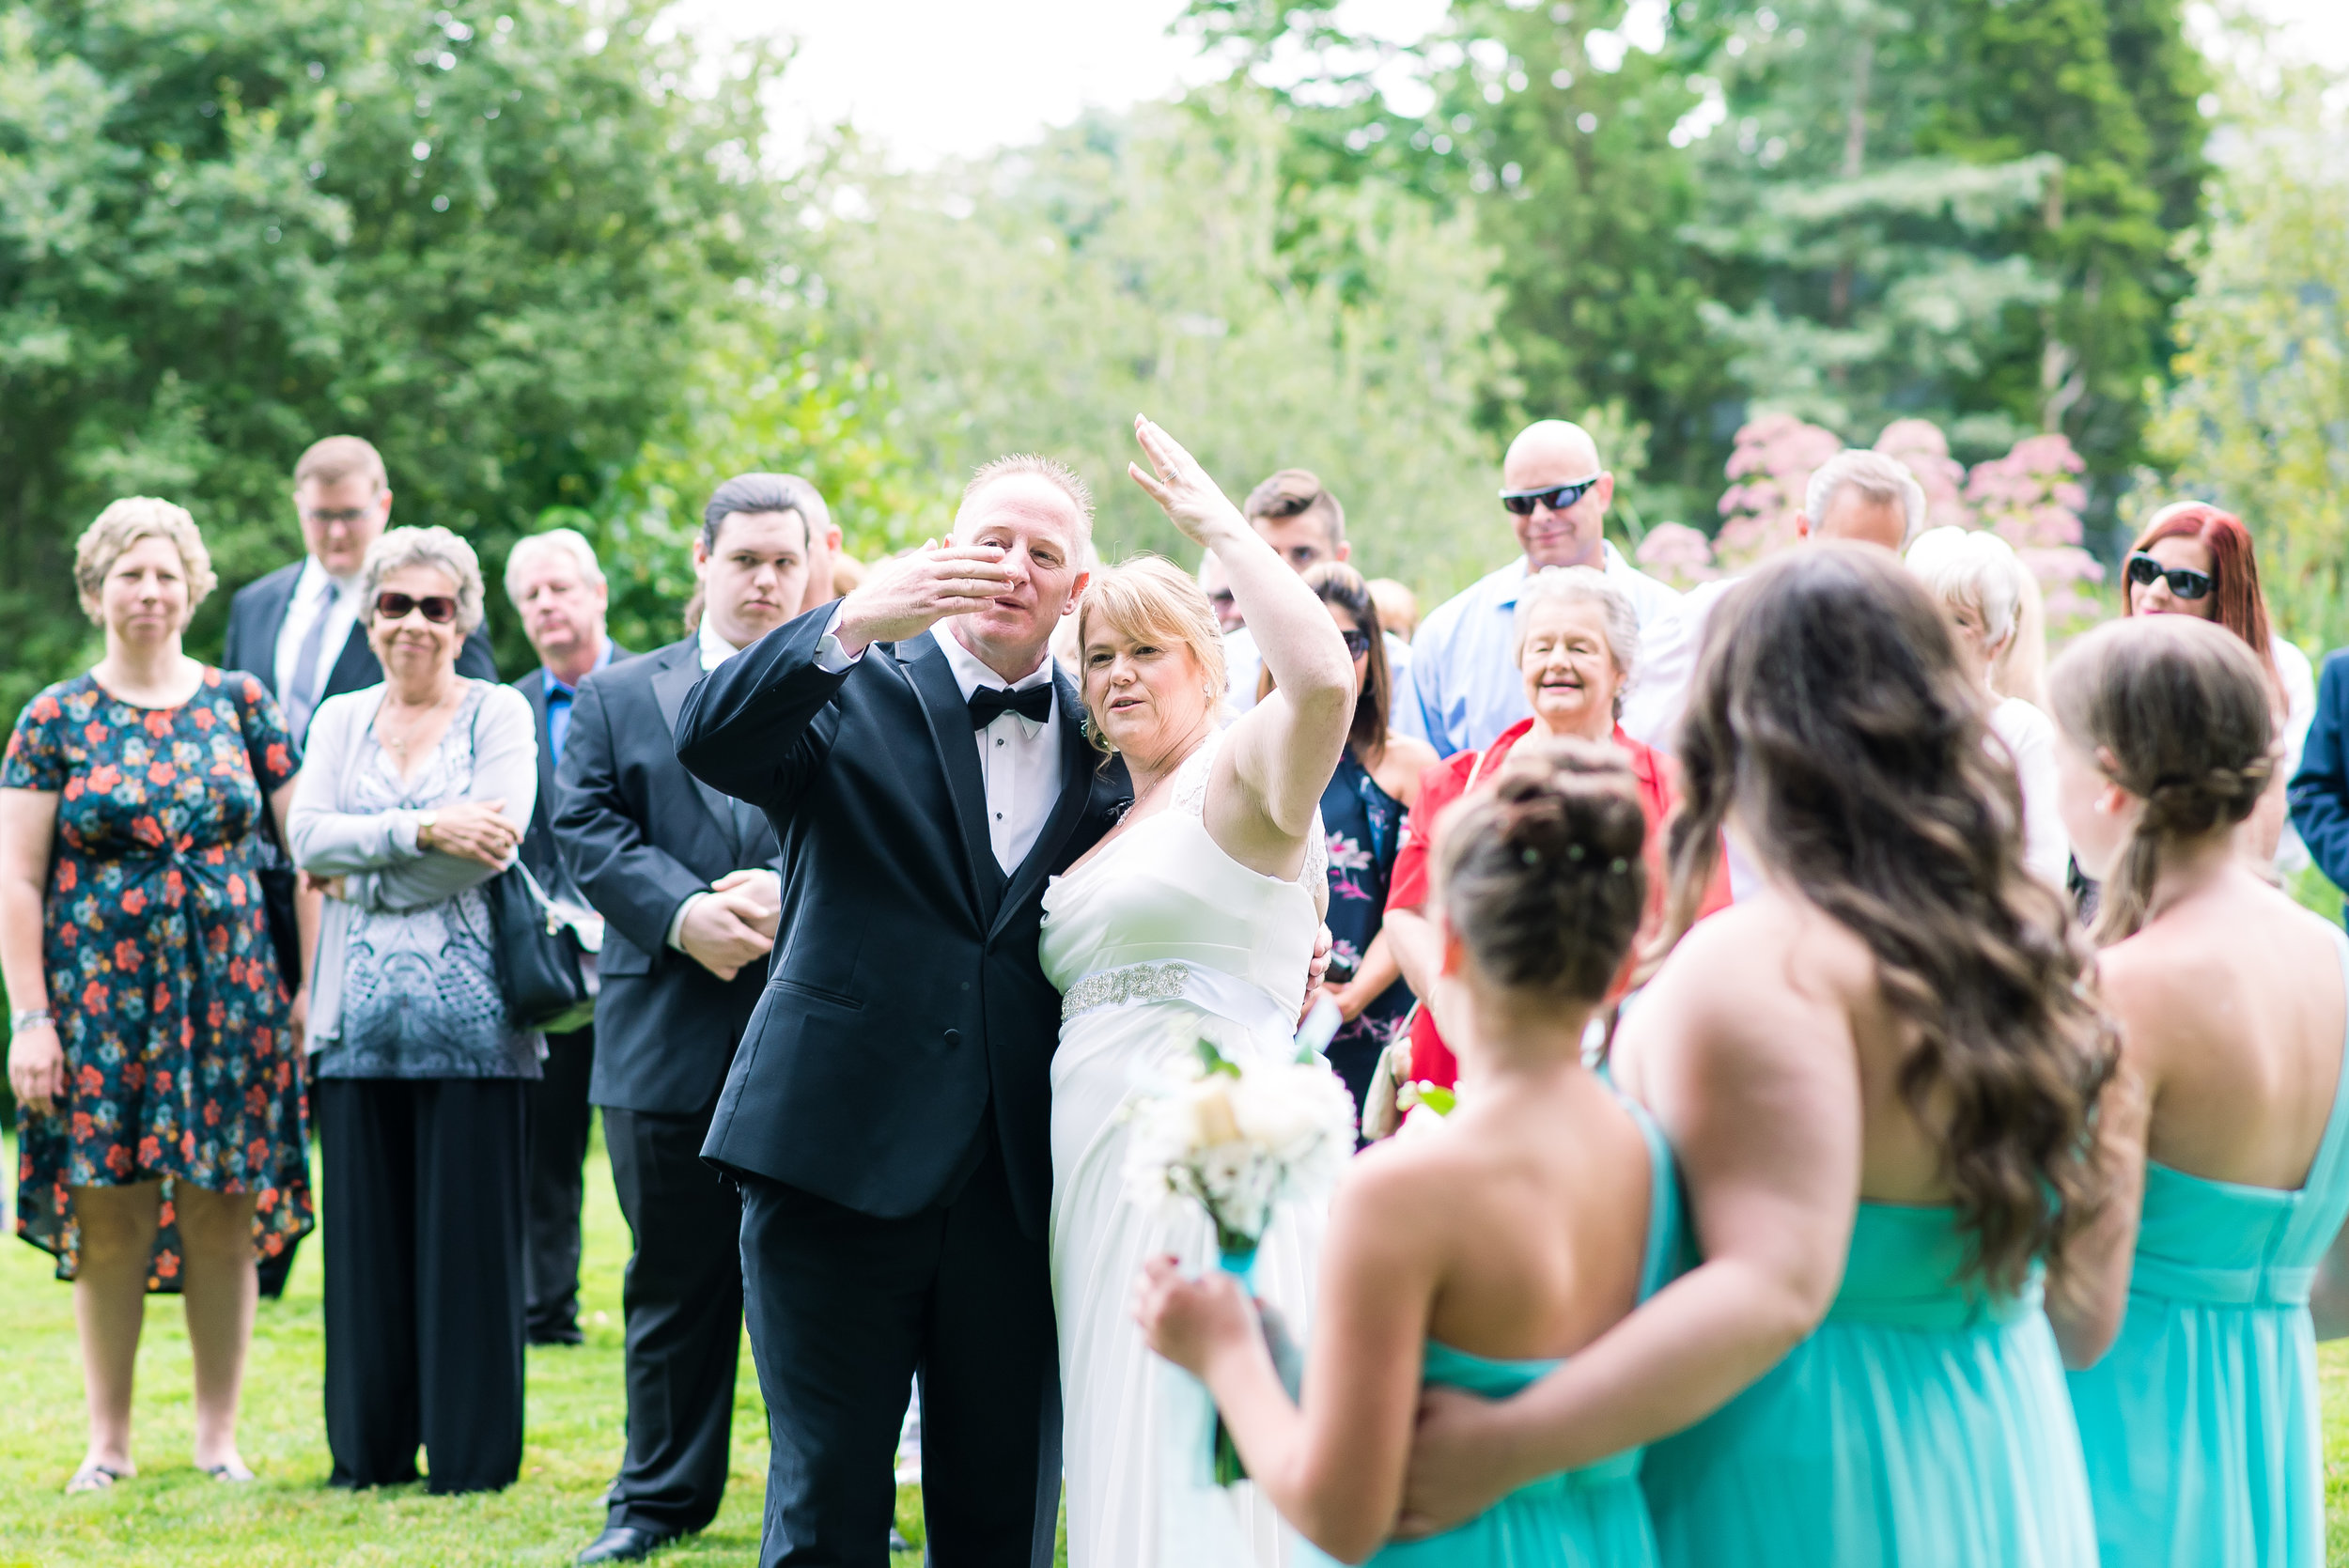 honoring those in spririt at wedding in brewster gardens plymouth ma (38 of 1).jpg